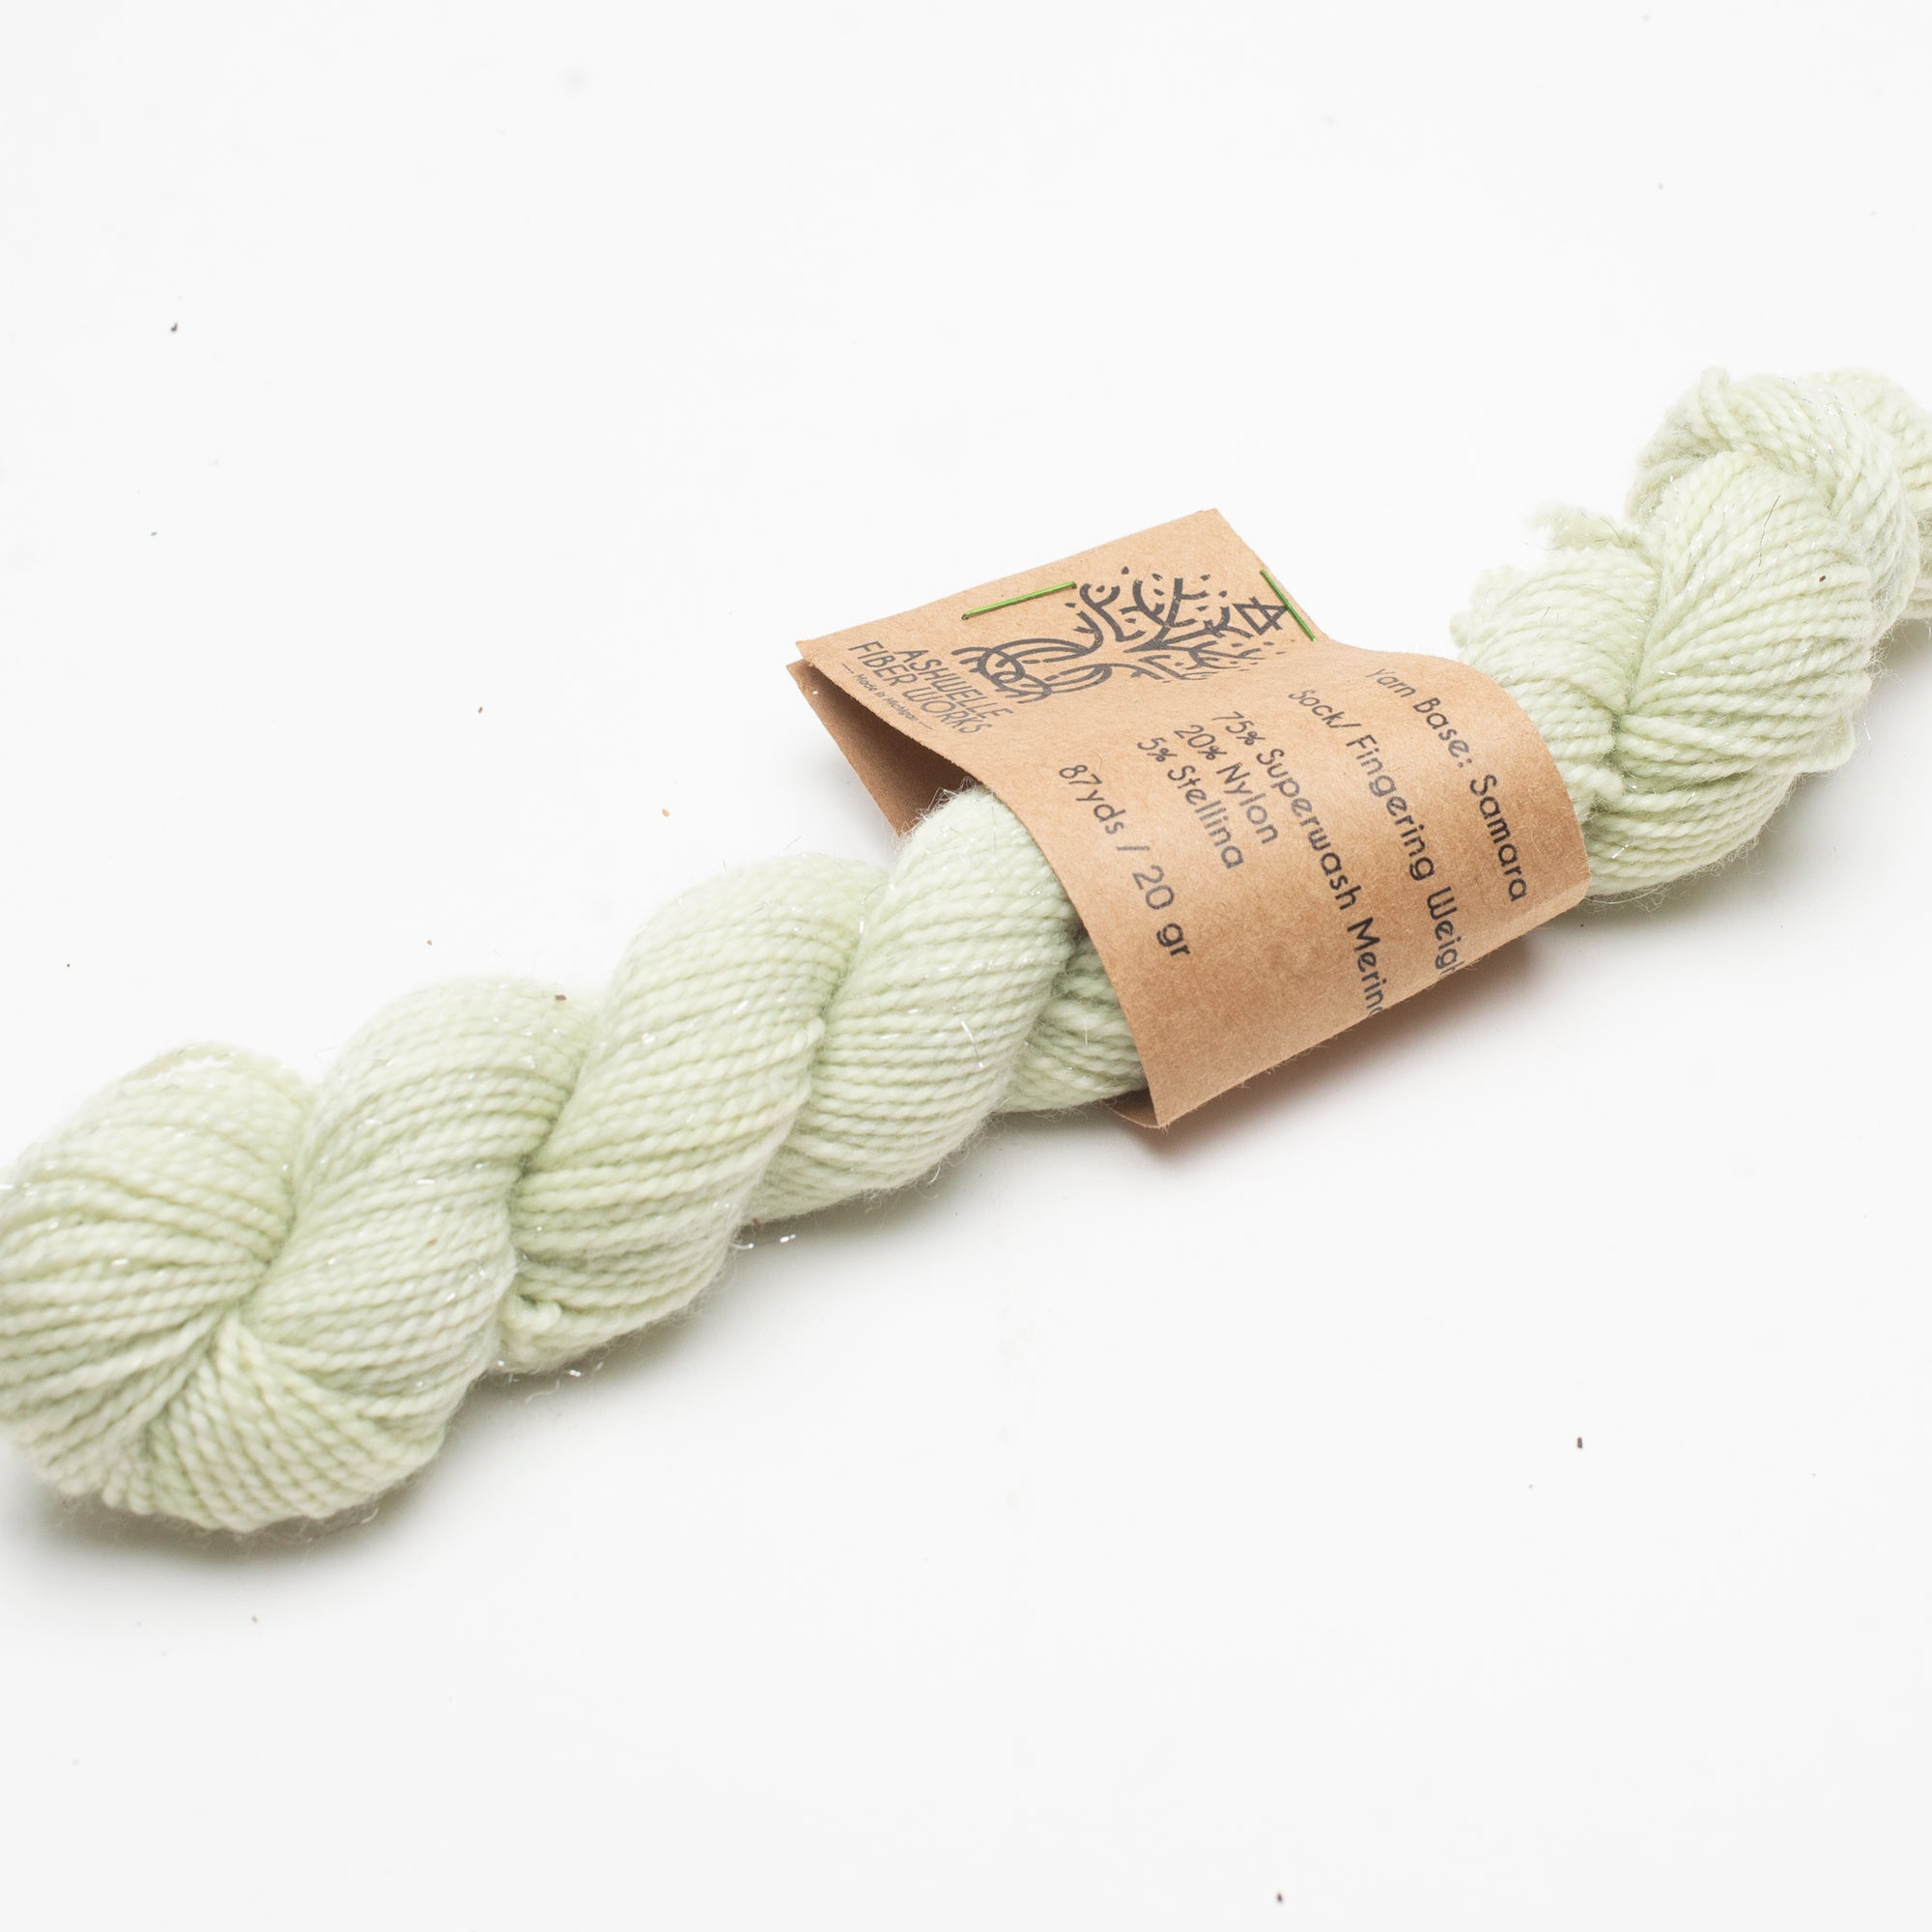 Yarn - Mini Skein Naturally Dyed with Violets